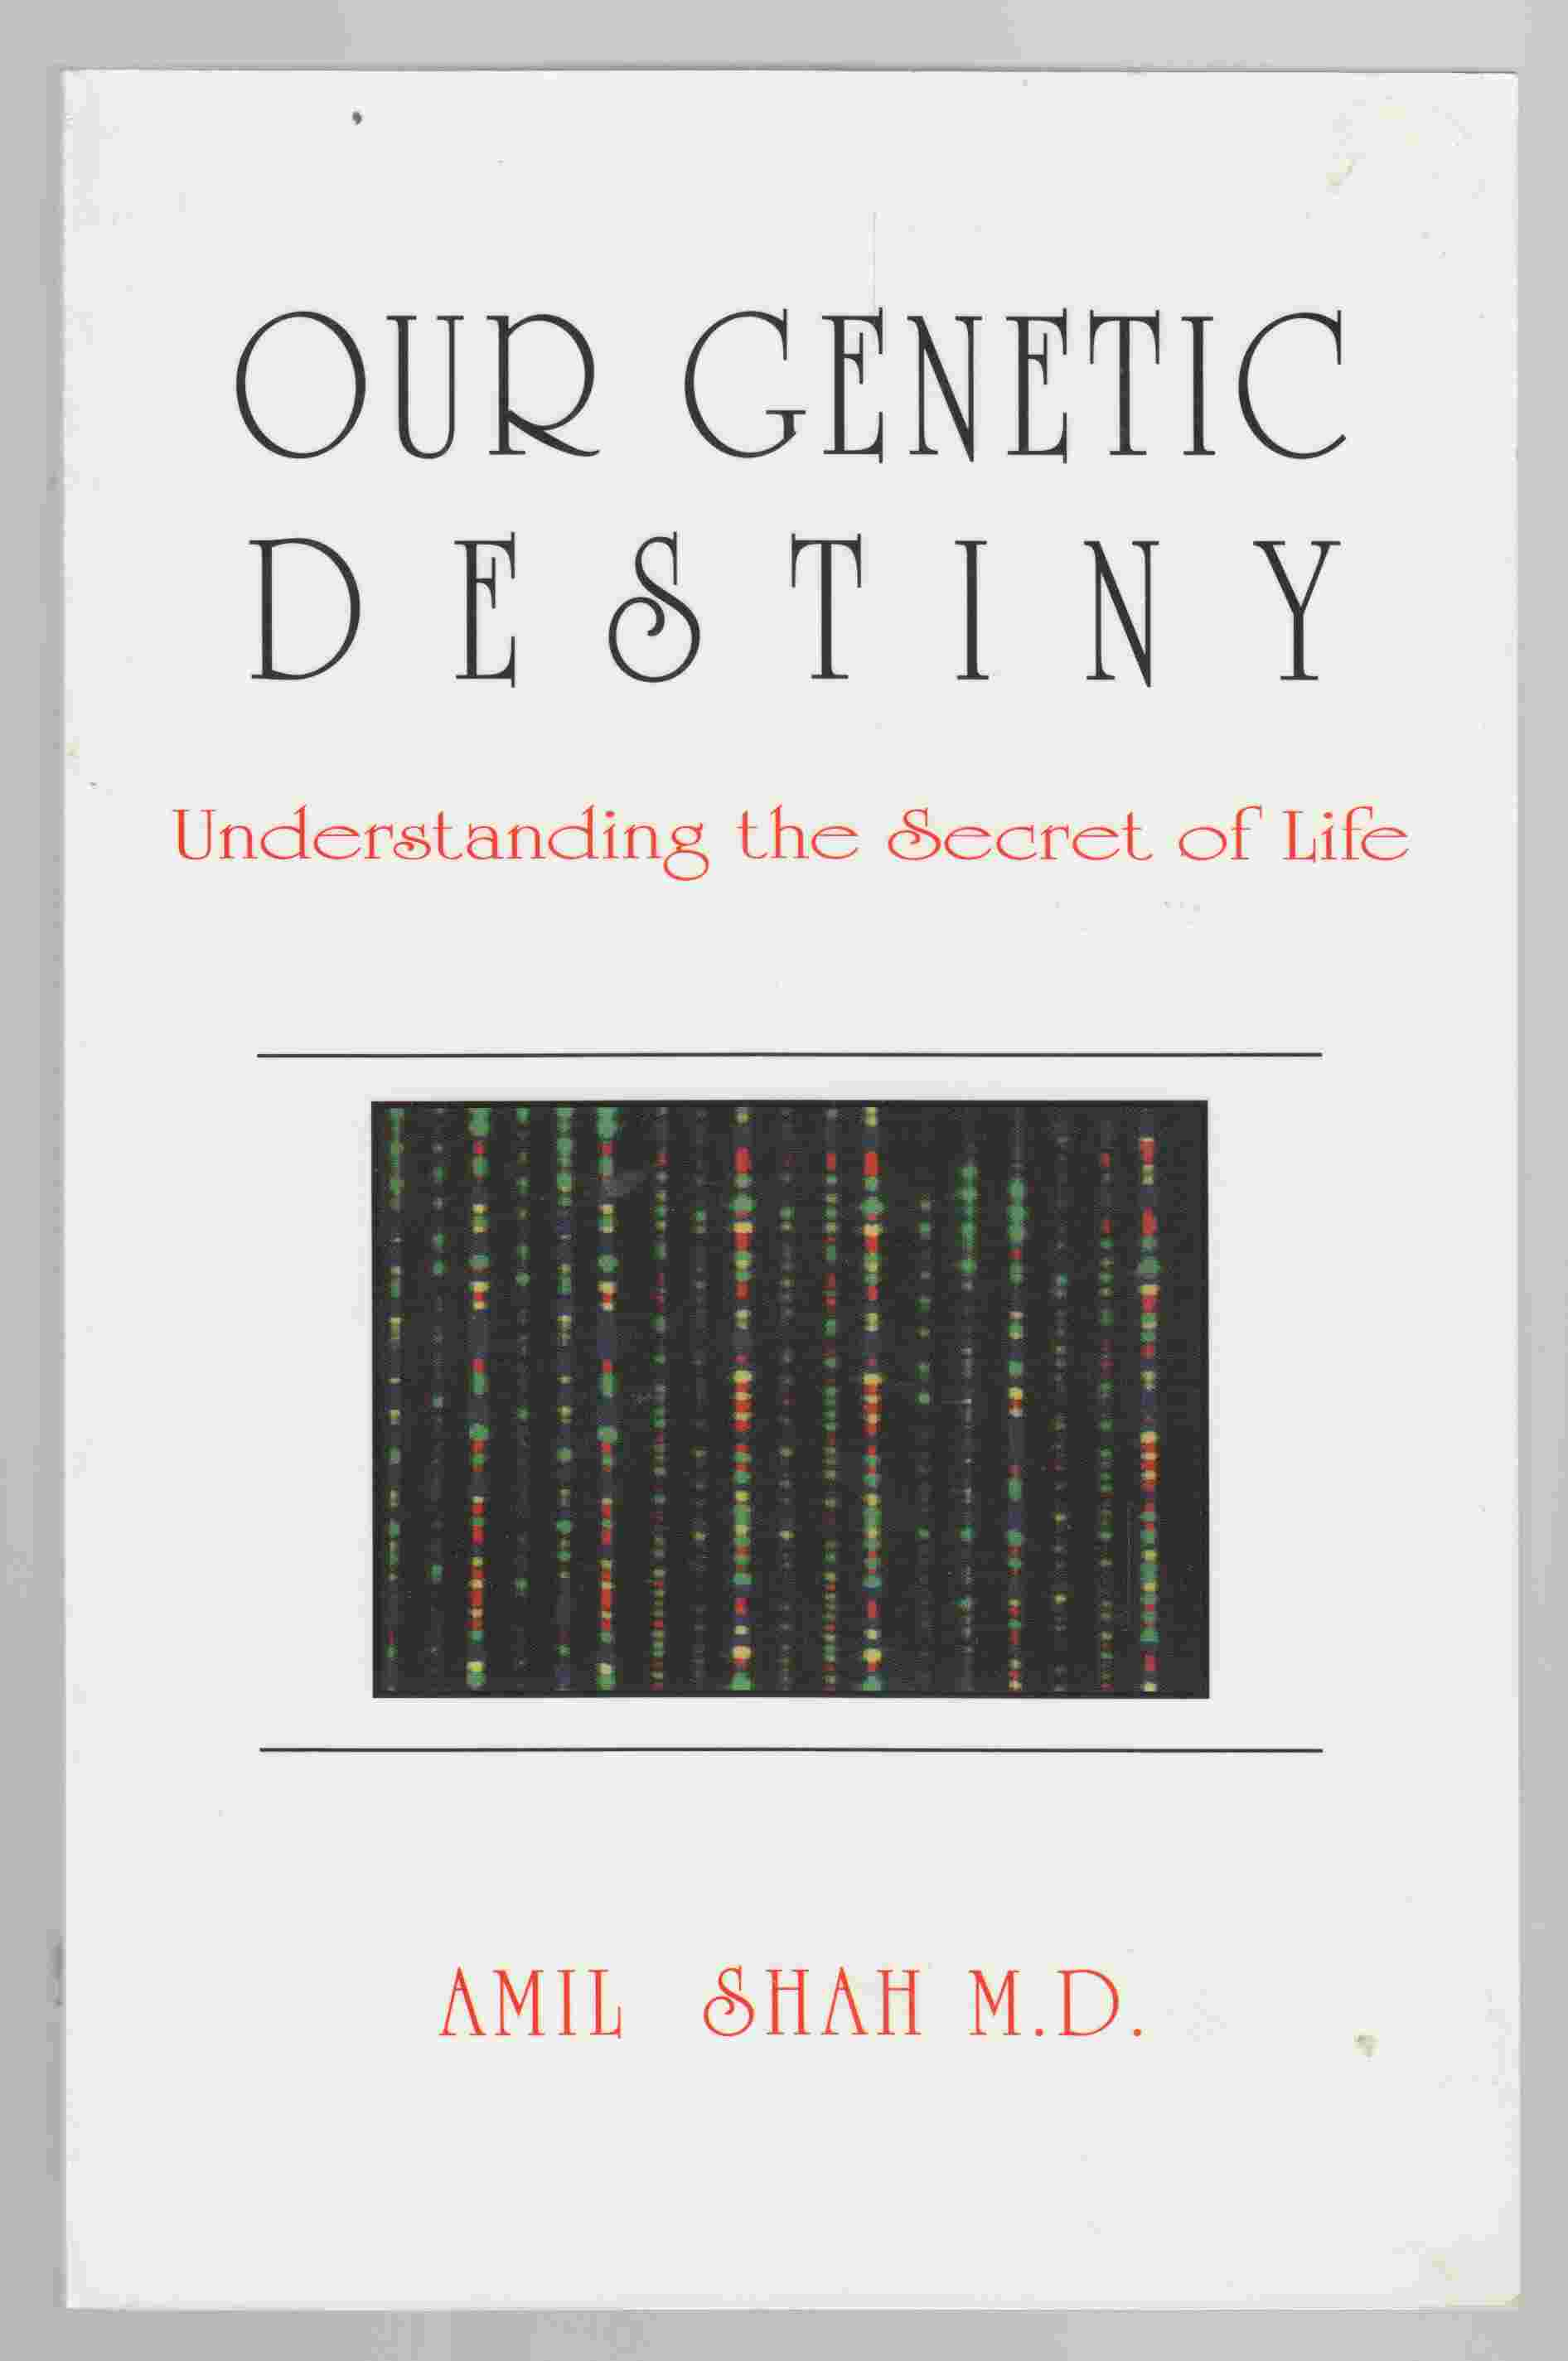 Image for Our Genetic Destiny Understanding the Secret of Life